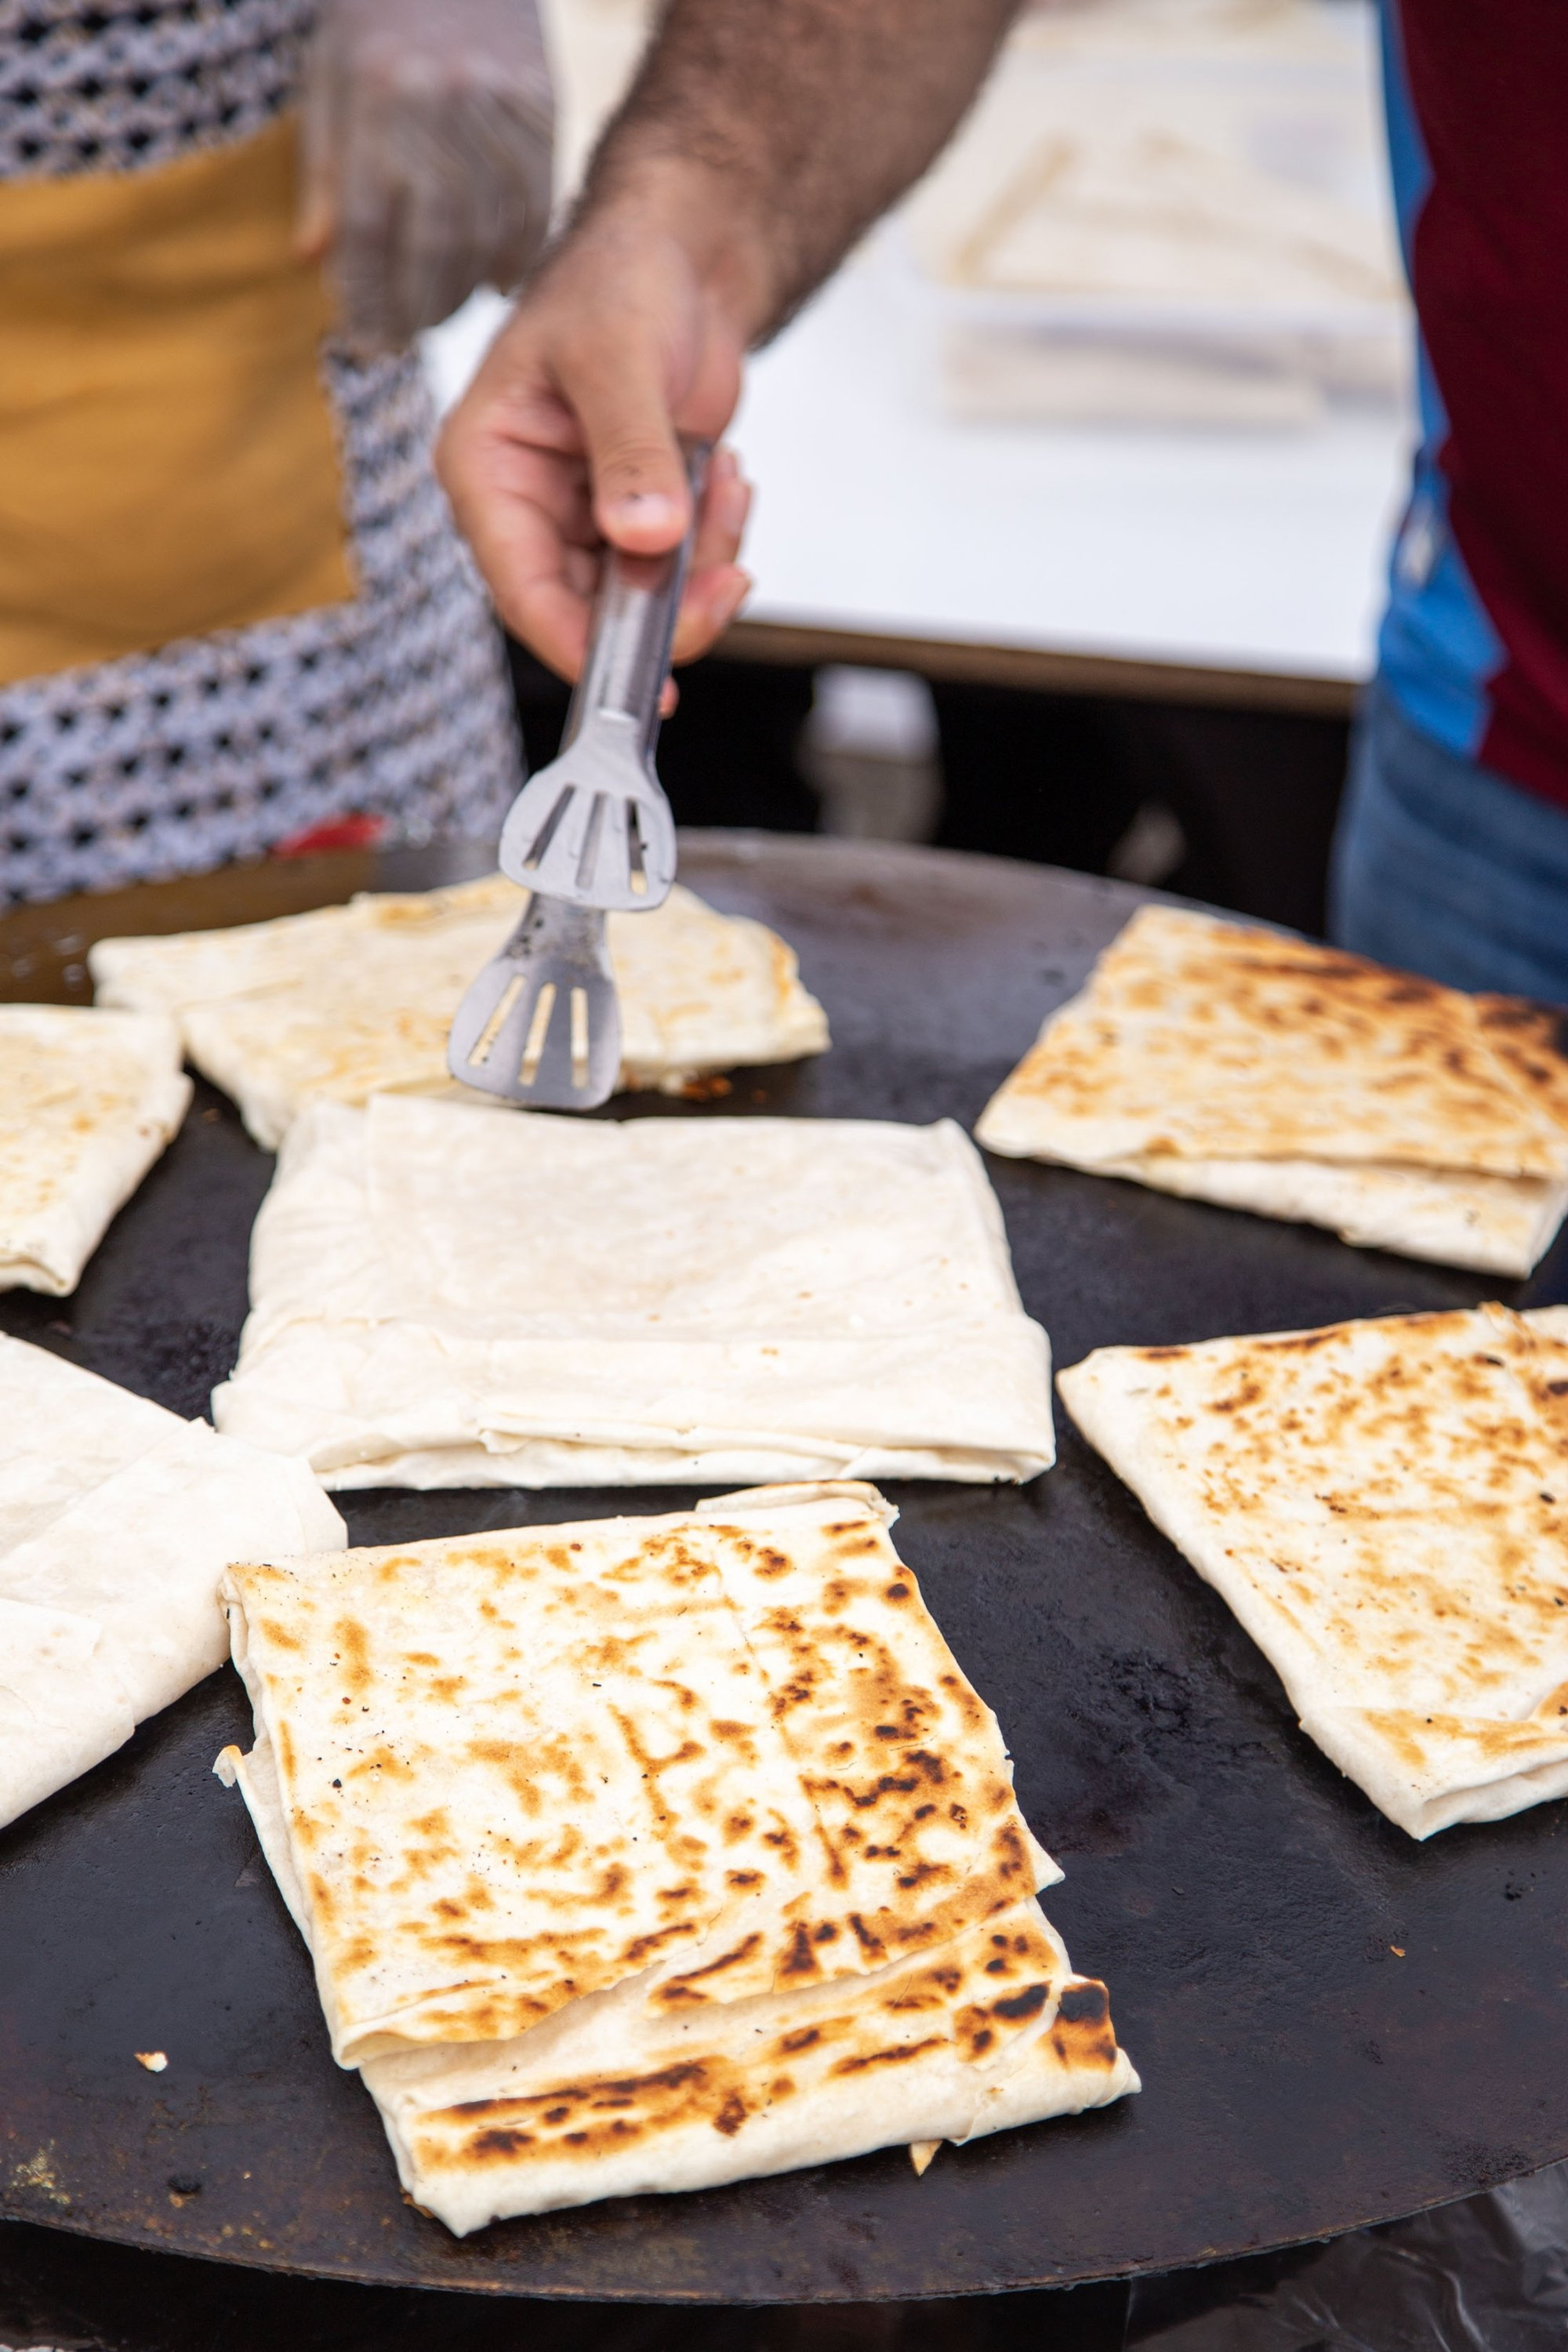 Traditional Turkish gözleme is cooked on a concave disc-shaped griddle called sac. (Shutterstock Photo)